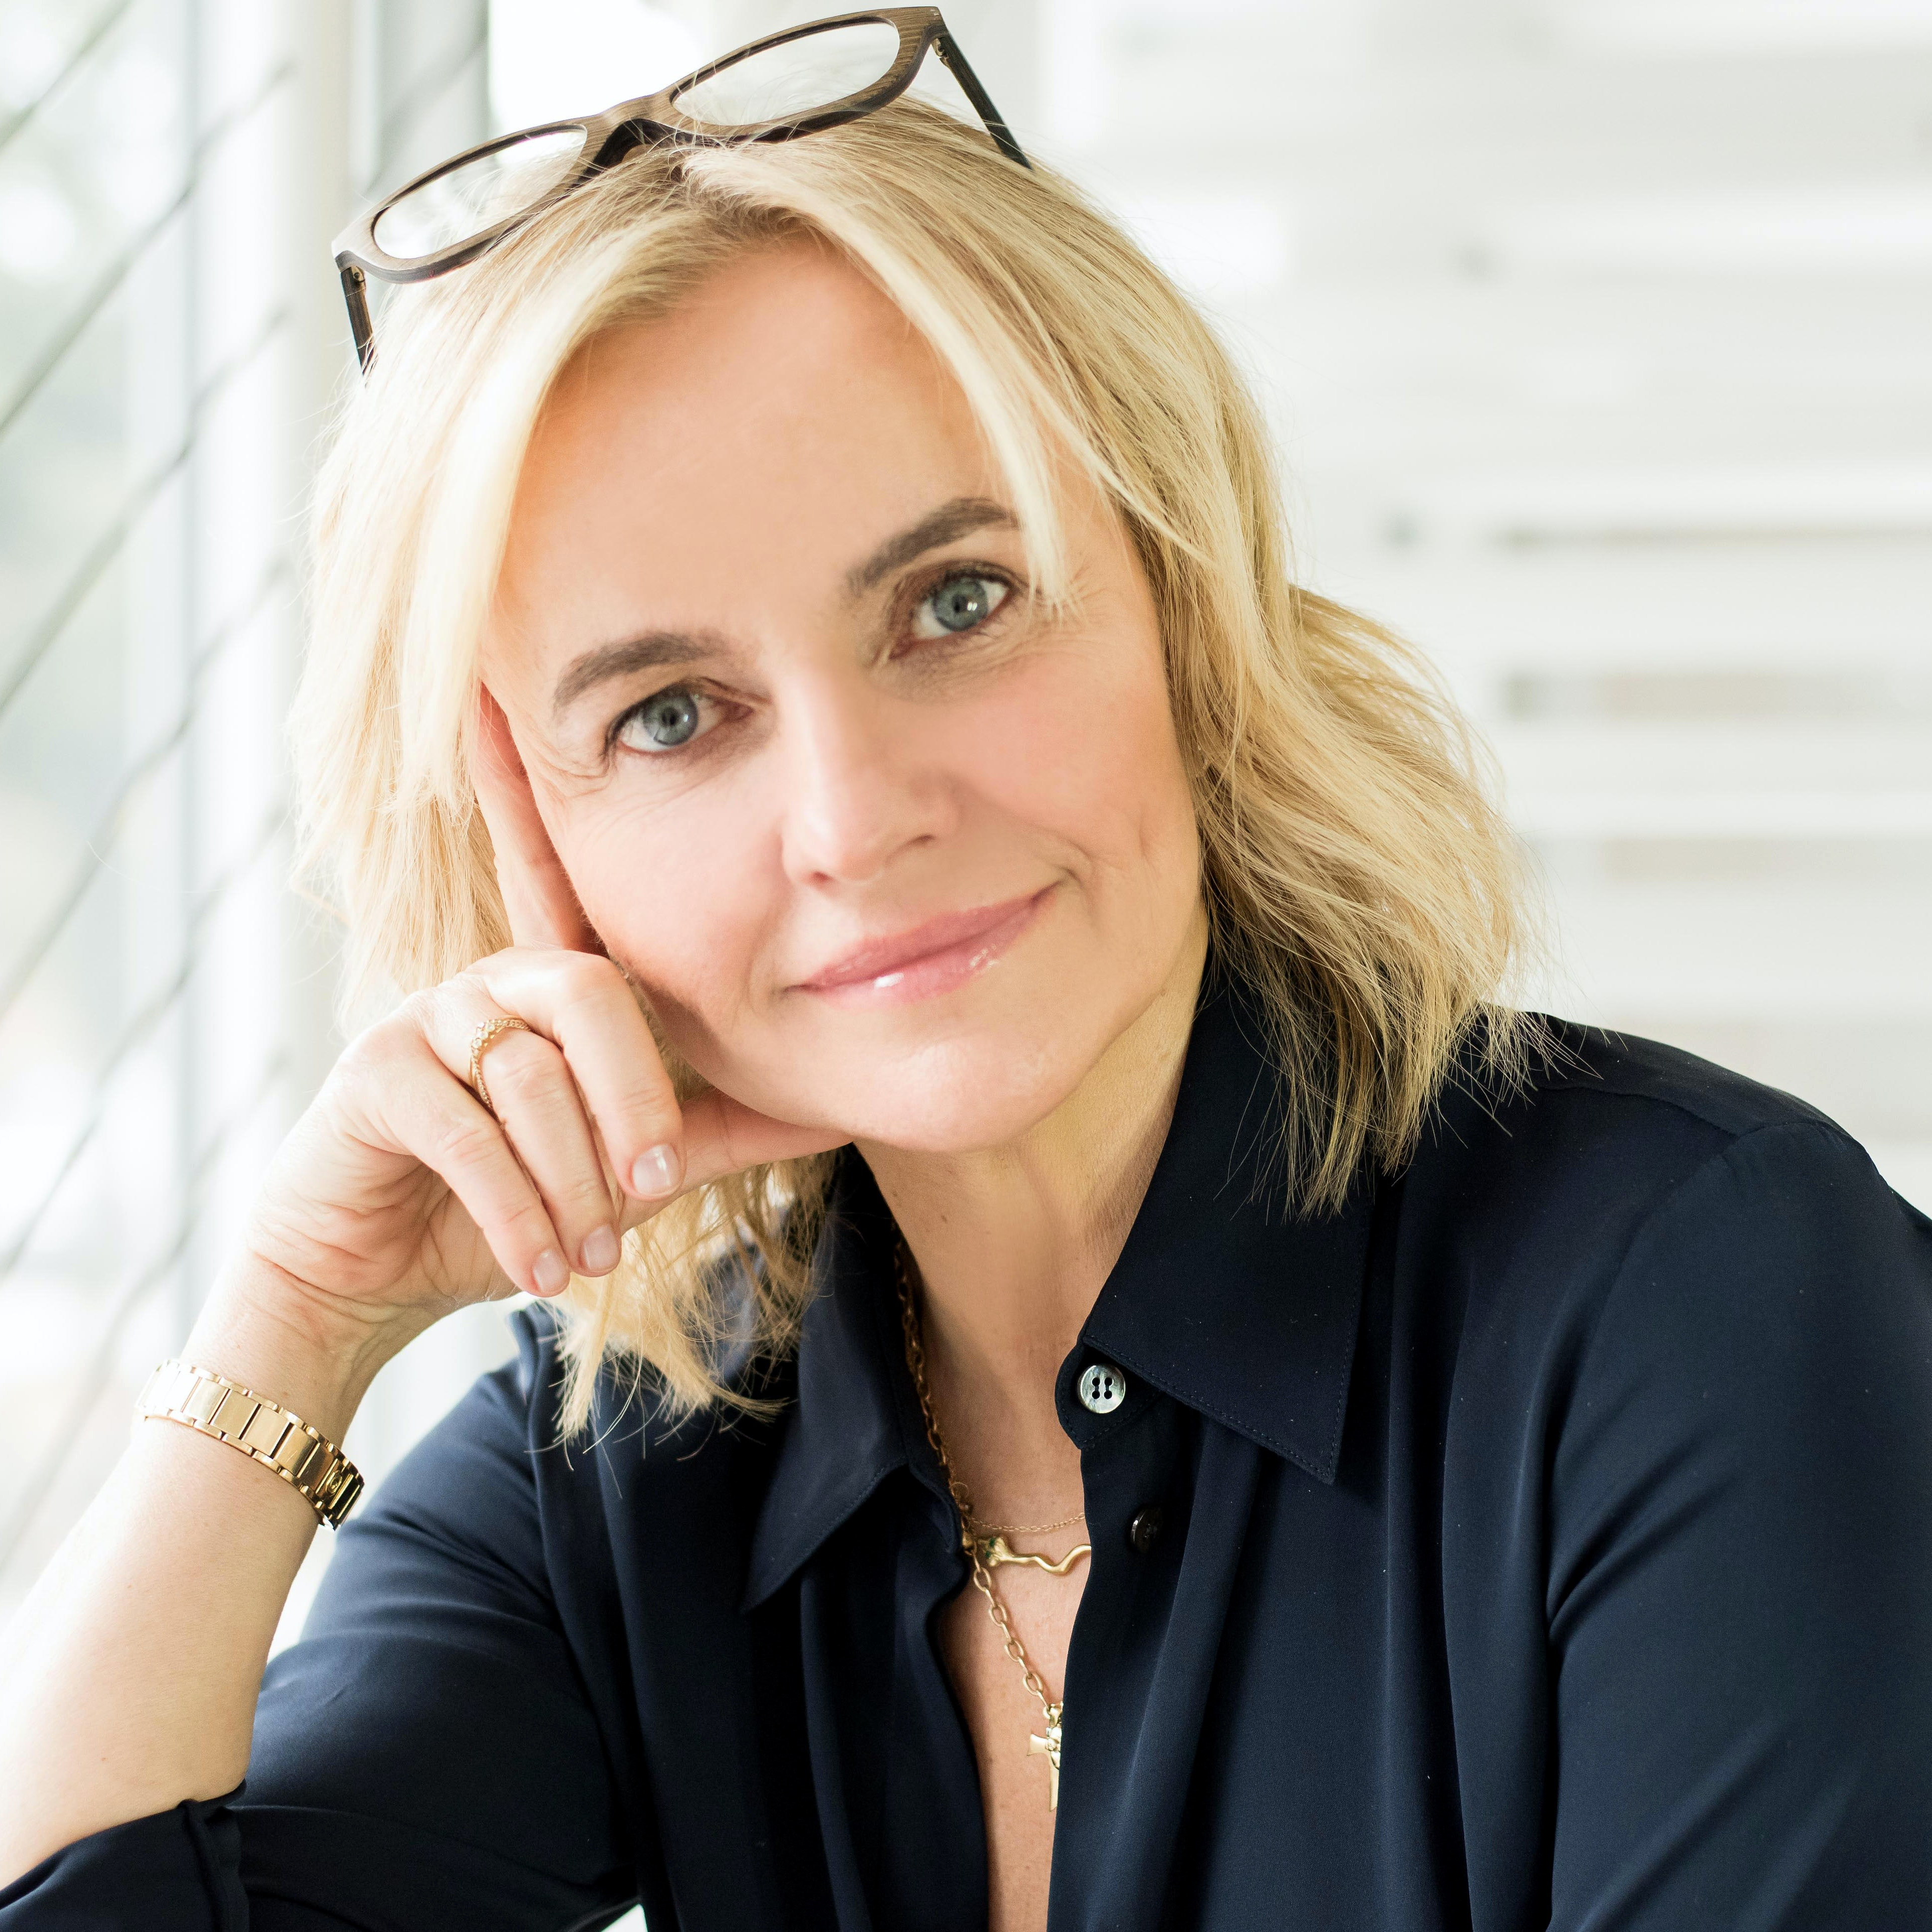 Dior Skincare Ambassador Joanna Czech on Devices, Influencing, and How to Take Care of Your Neck